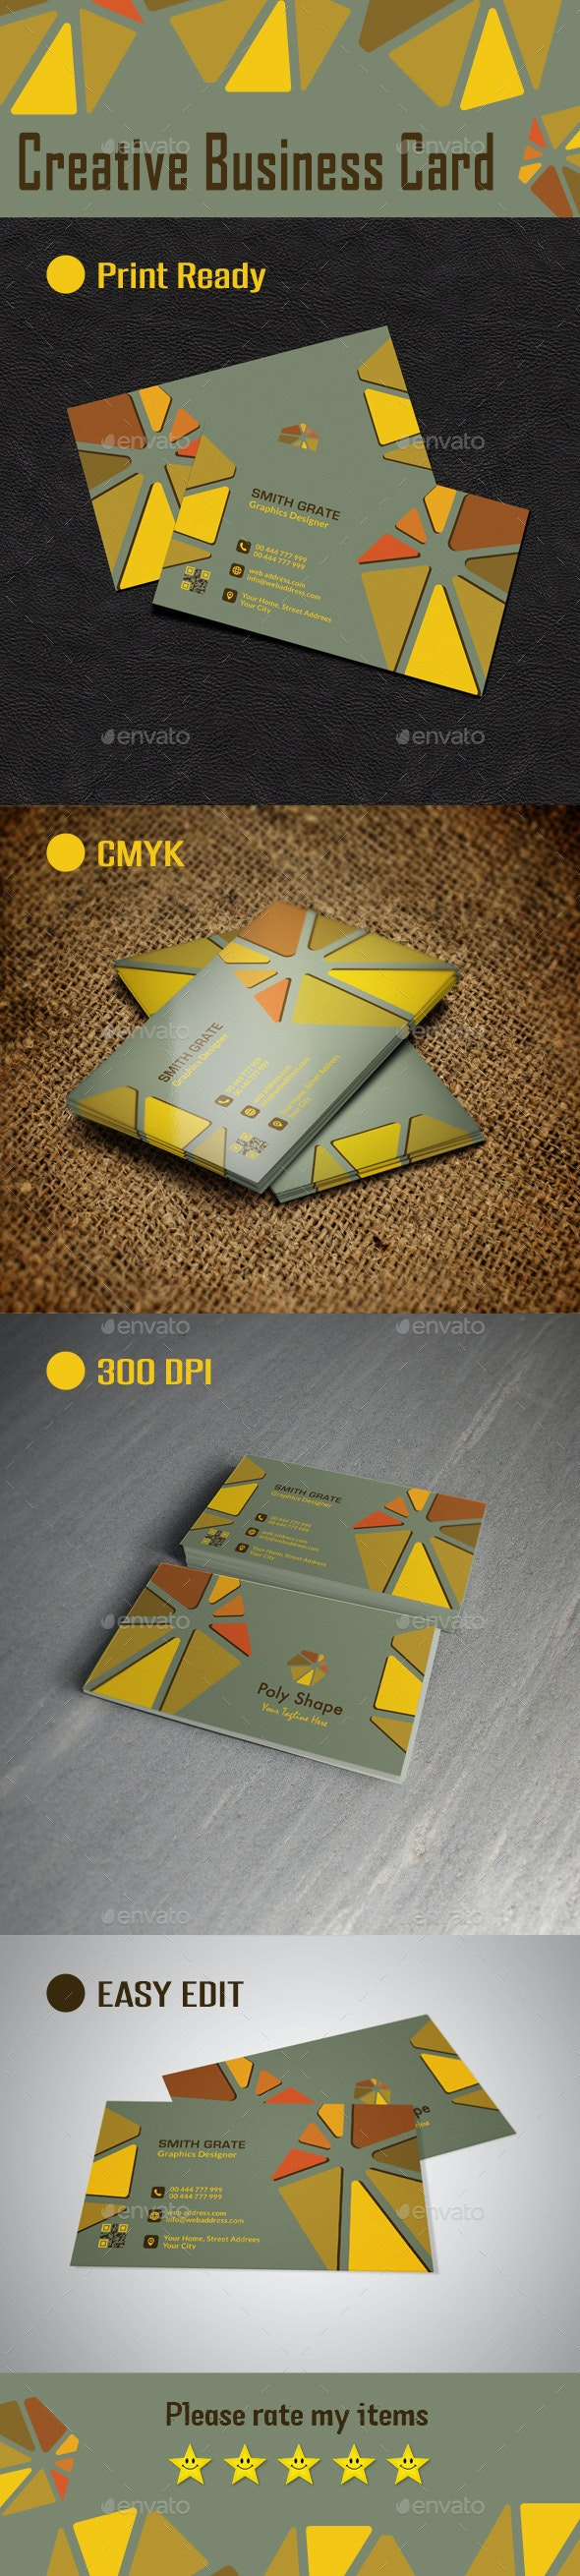 Creative Business Card - Business Cards Print